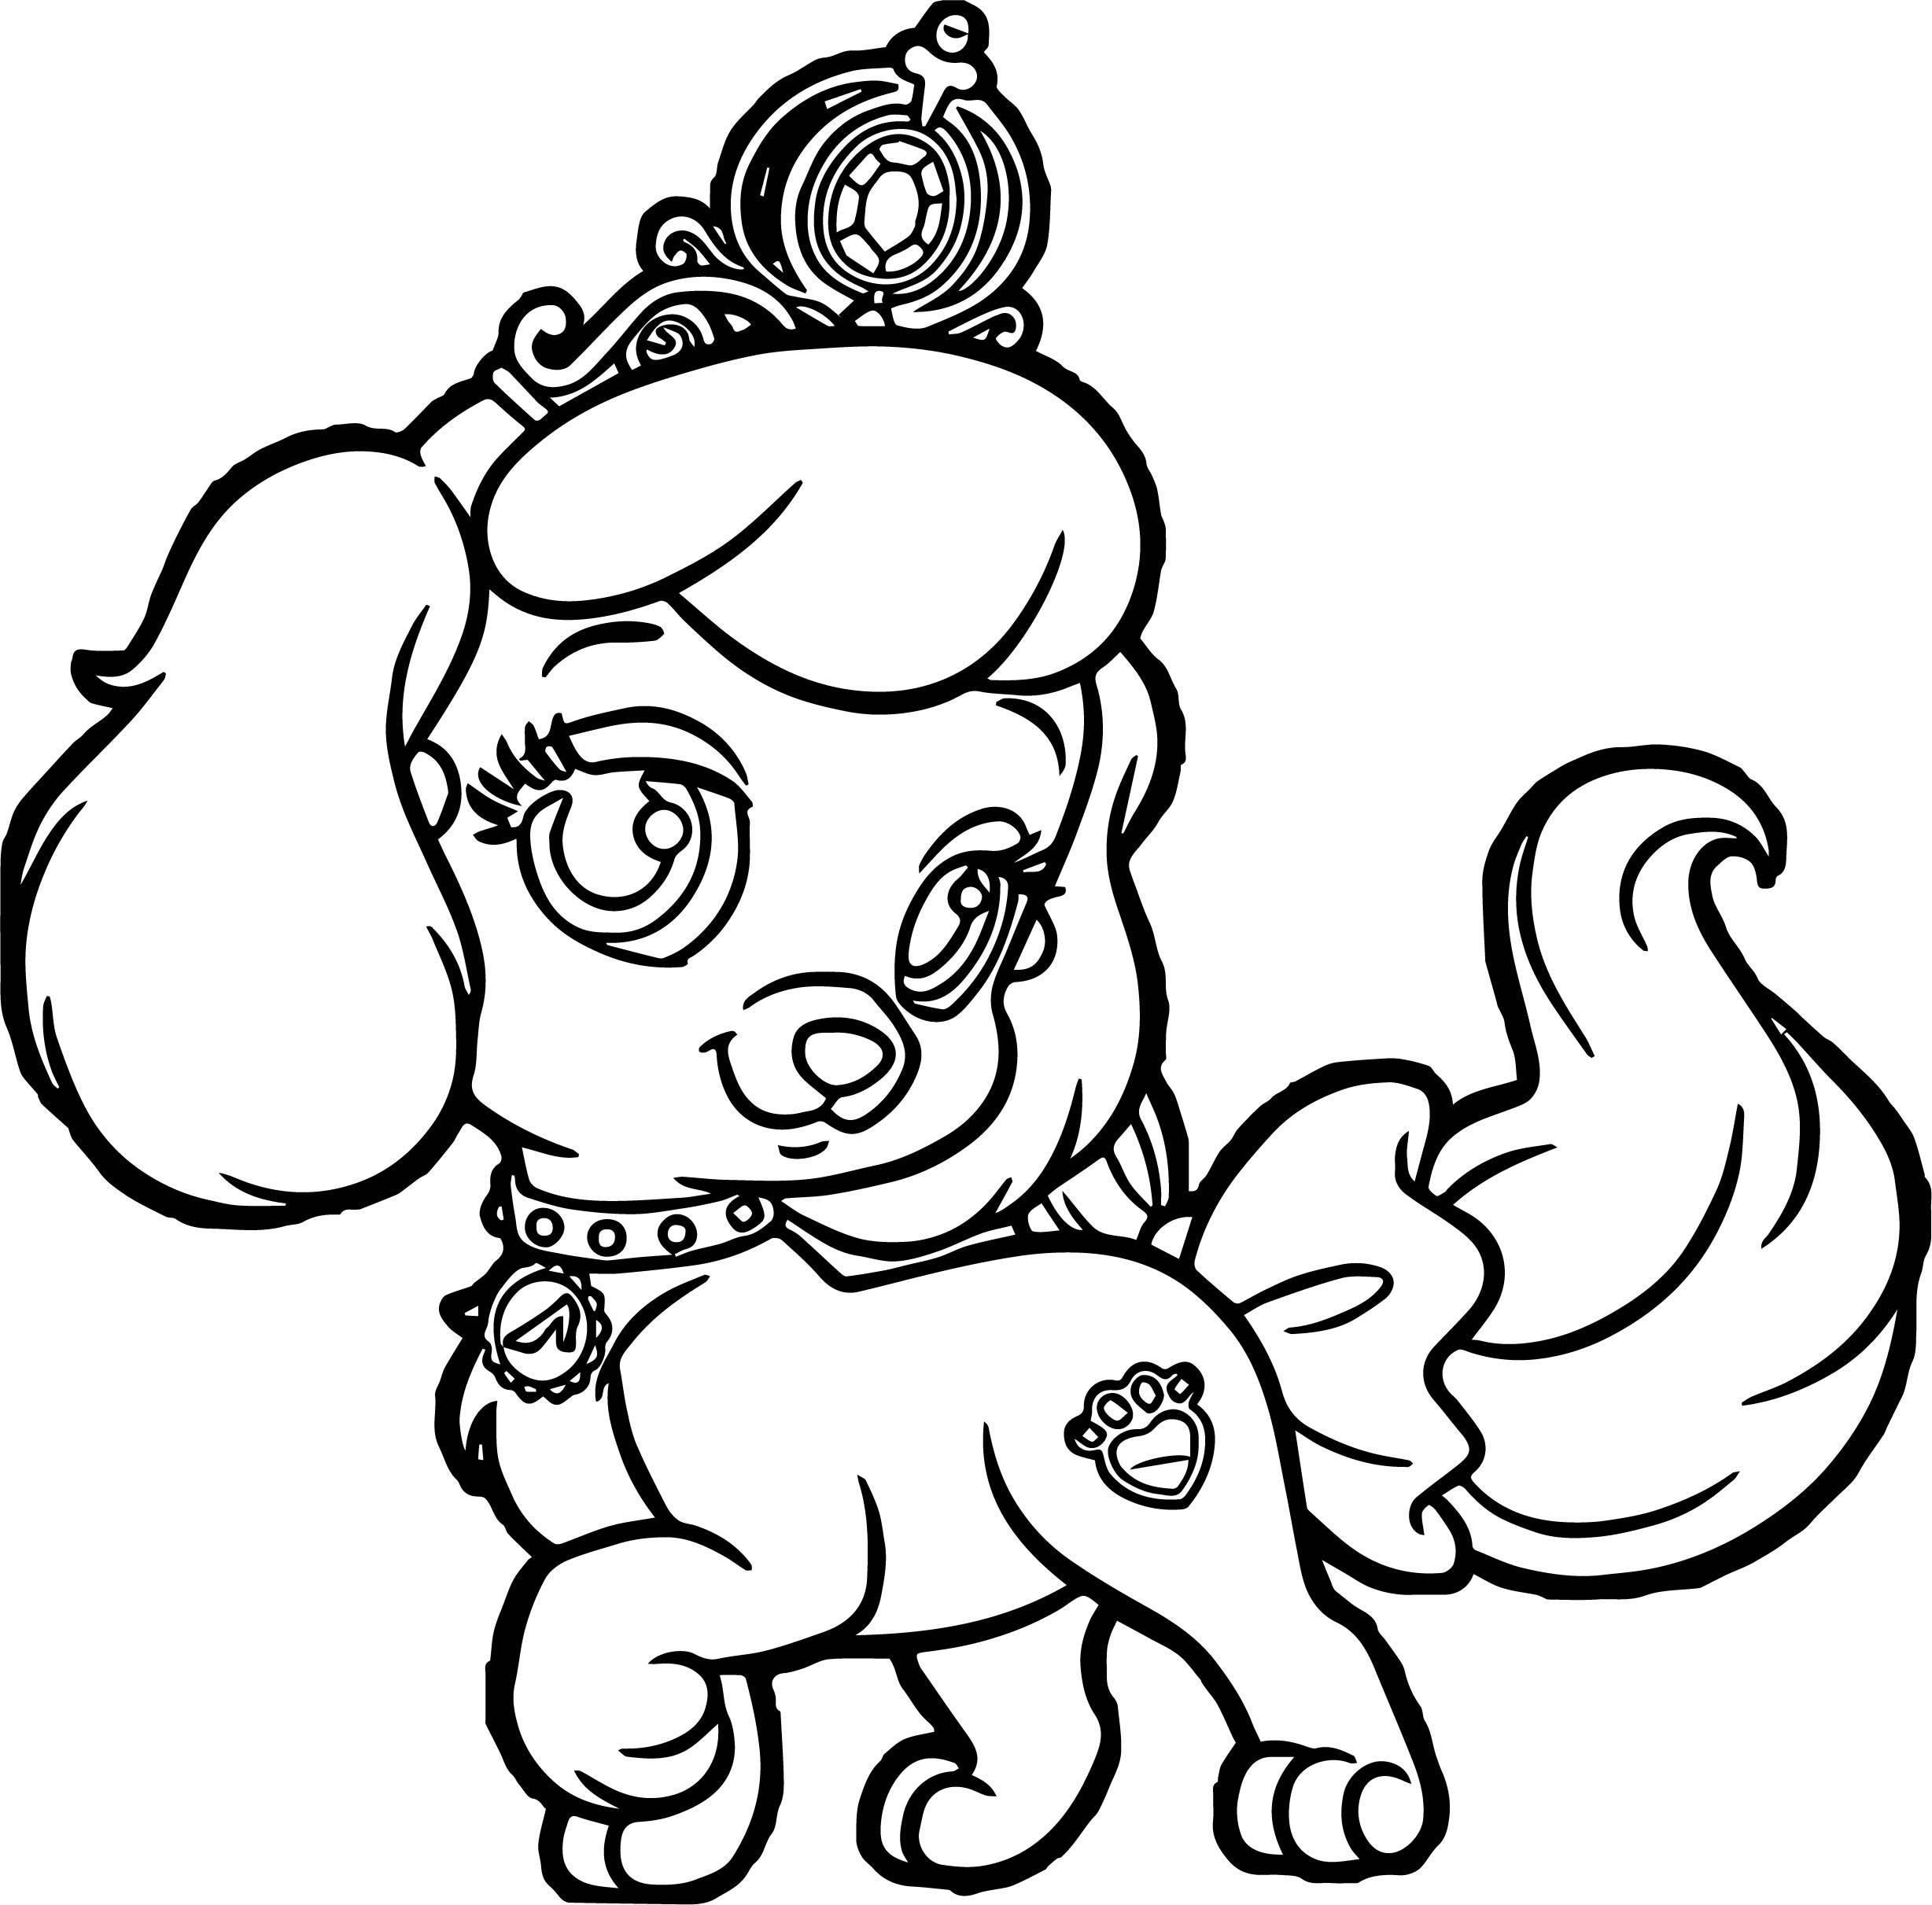 coloring pics of dogs cute dog animal coloring pages books for print coloring pics of dogs